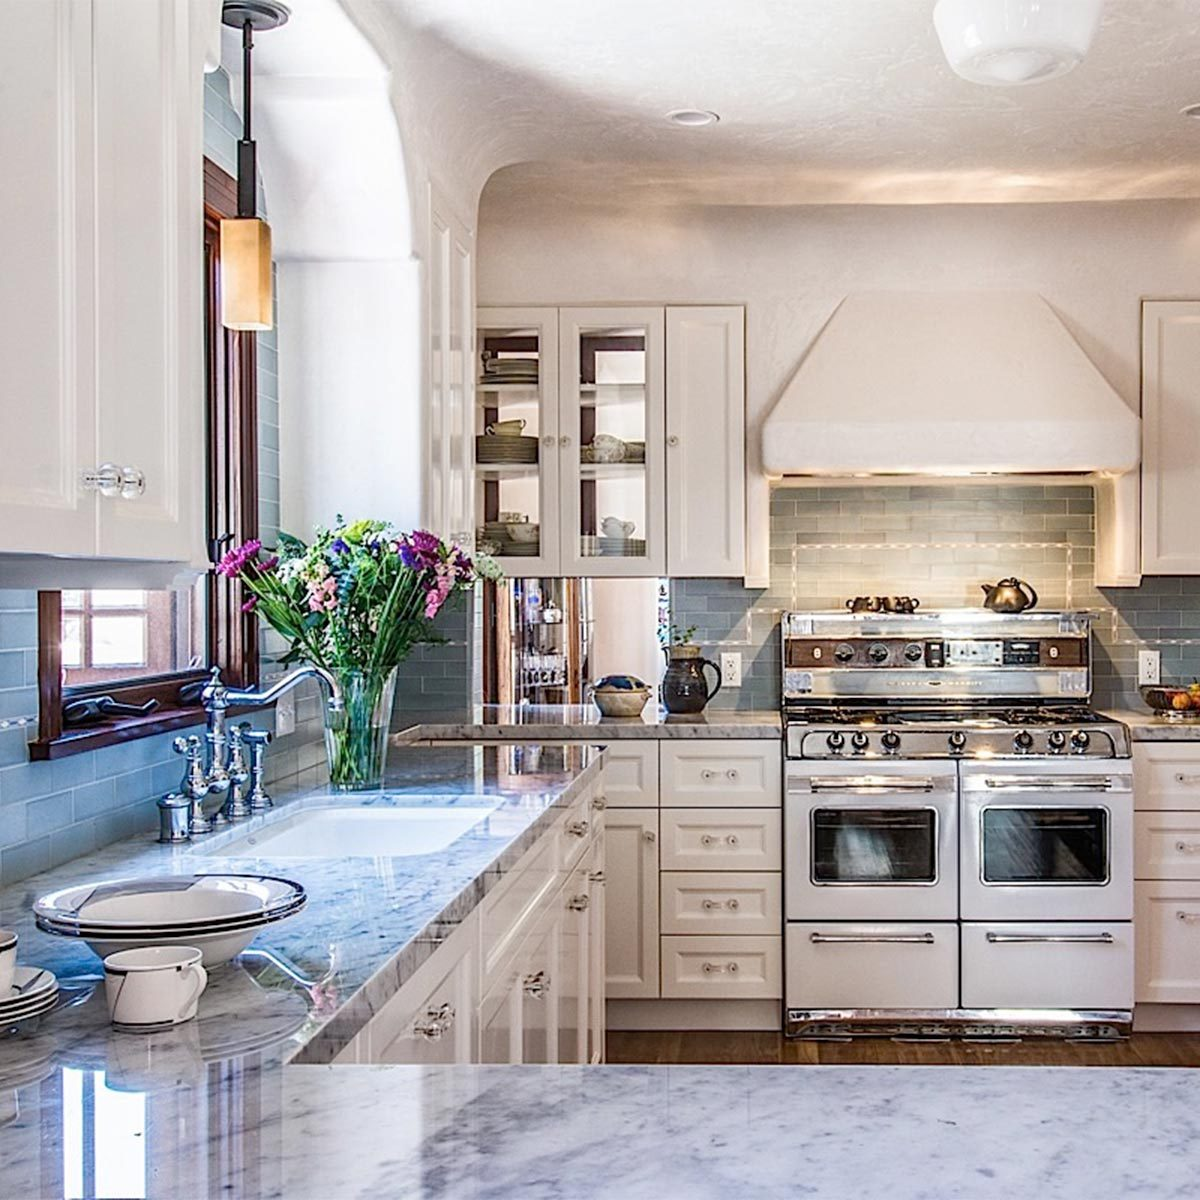 18 Incredible Kitchen Remodeling Ideas   Taste of Home